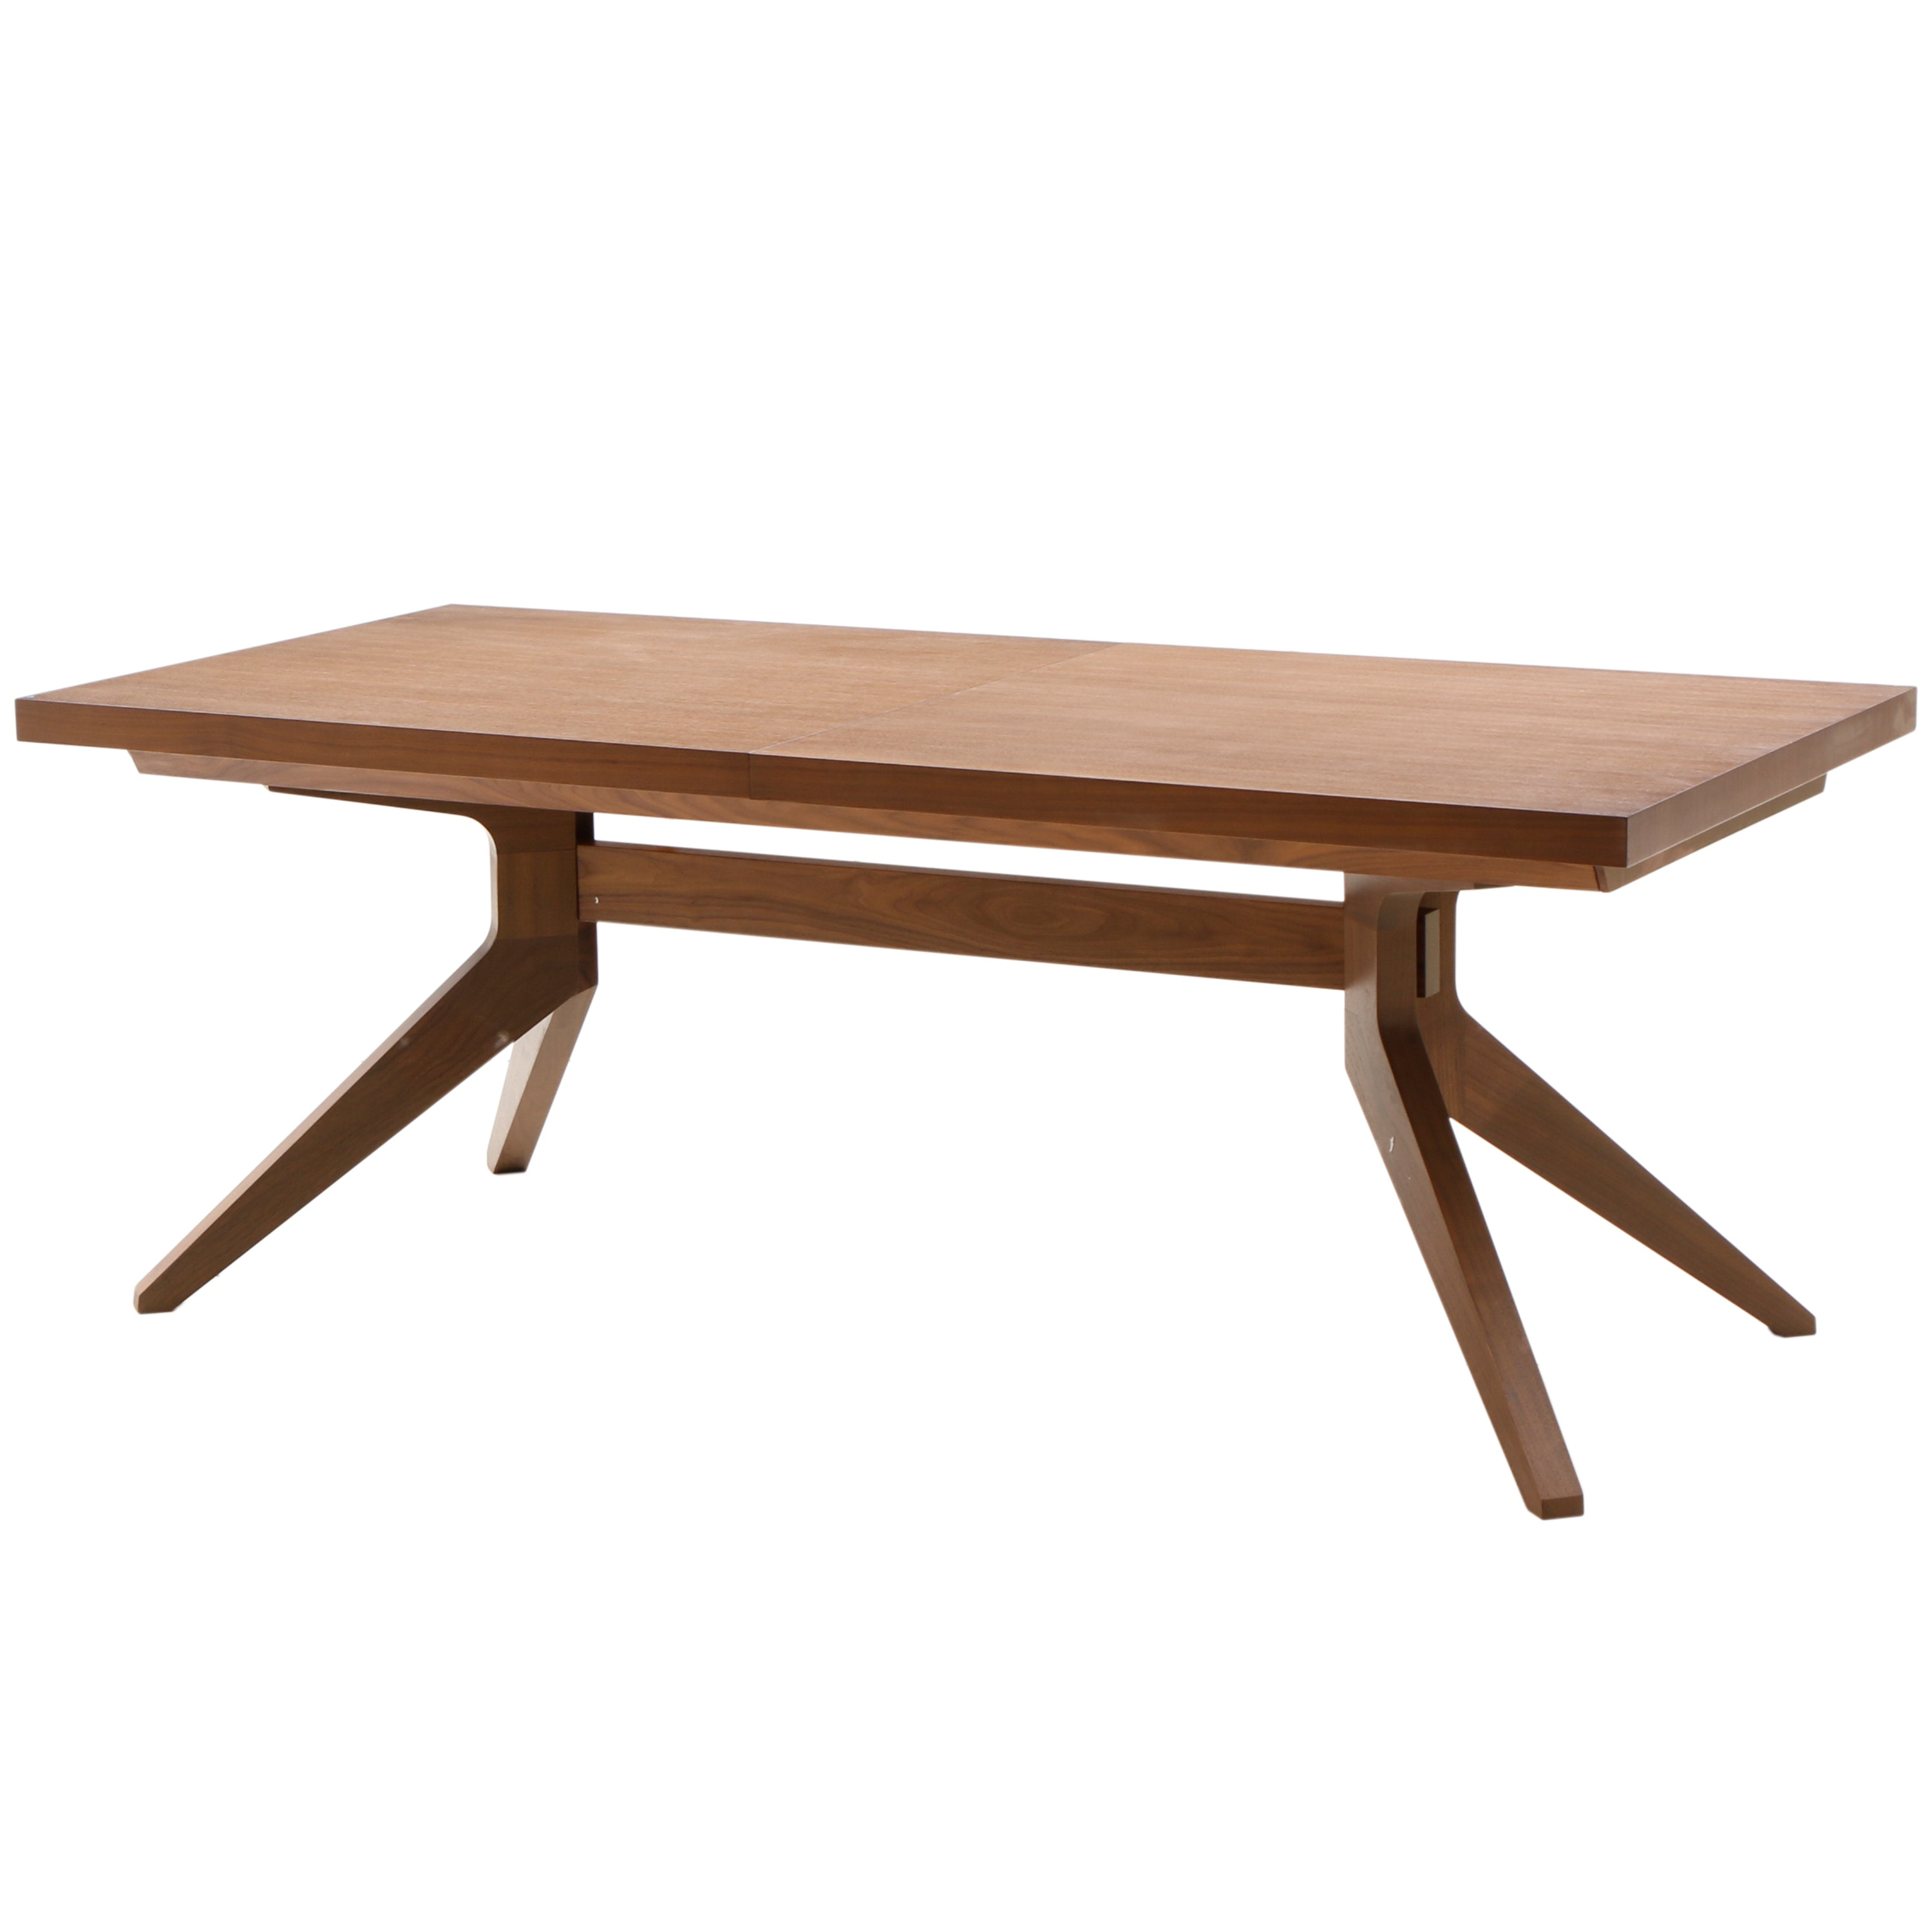 "Walnut ""Cross Extension Table"" by Matthew Hilton for Case"